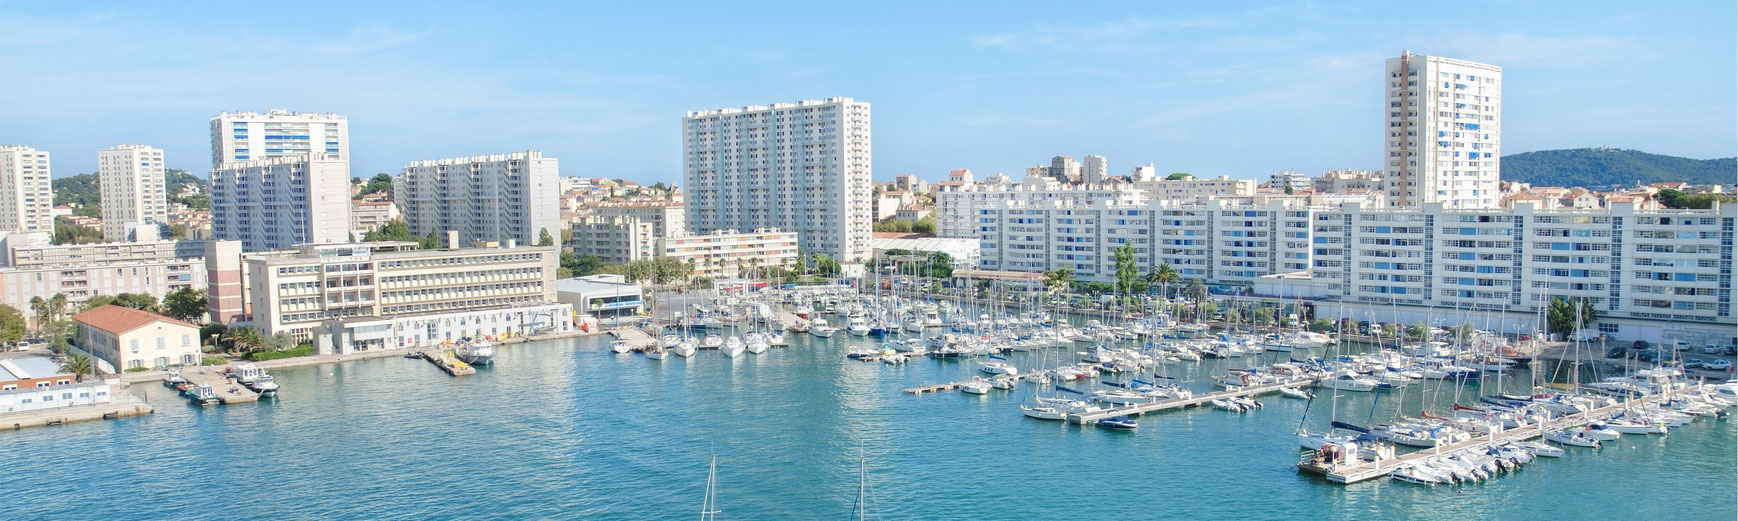 Toulon, France, view of the harbor